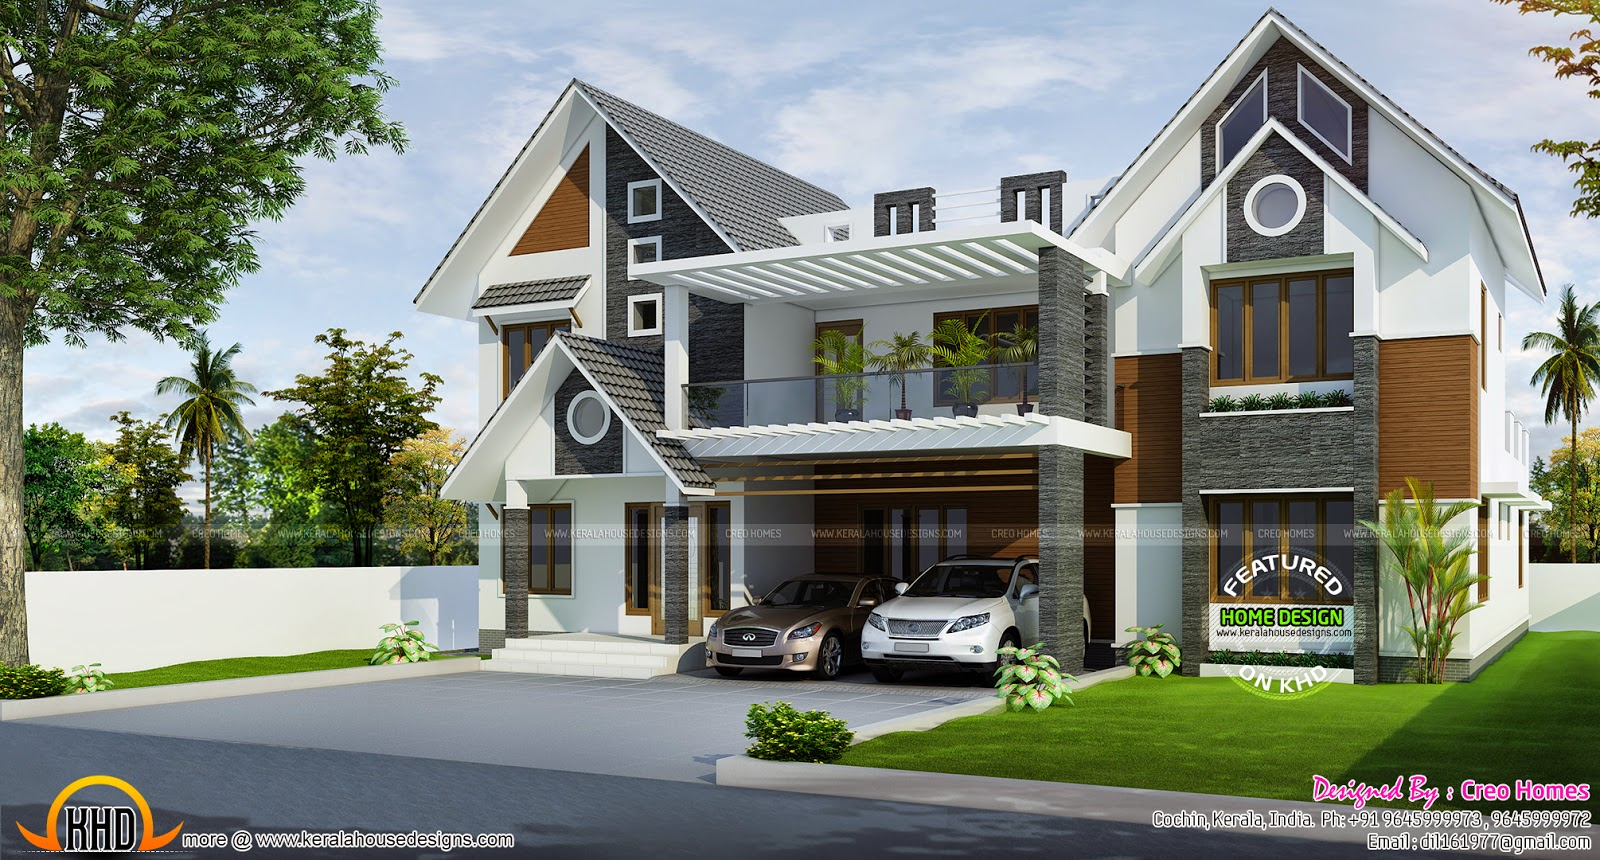 Modern sloped roof home kerala home design and floor plans for Slope home design